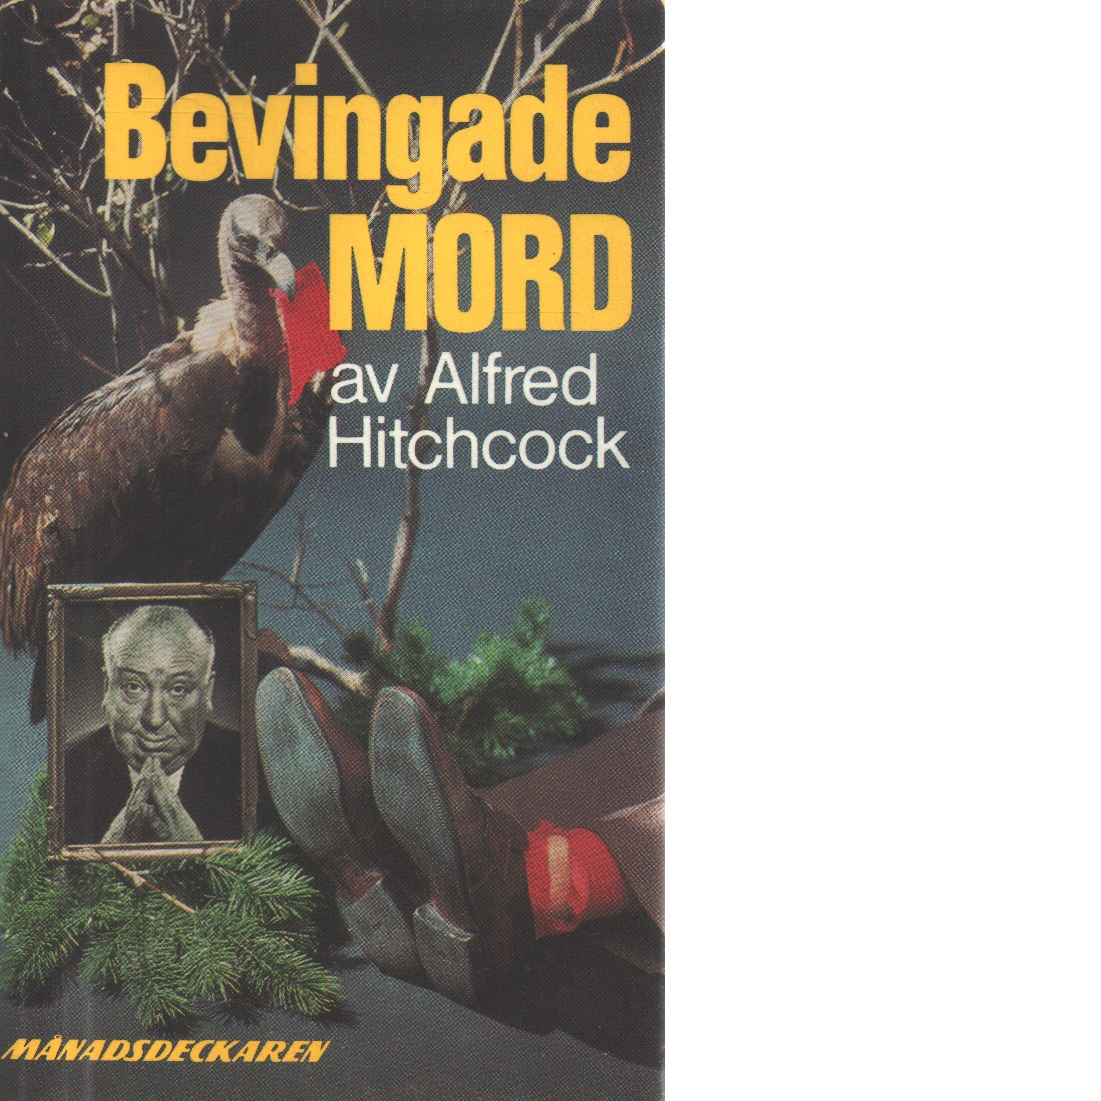 Bevingade mord - Hitchcock, Alfred